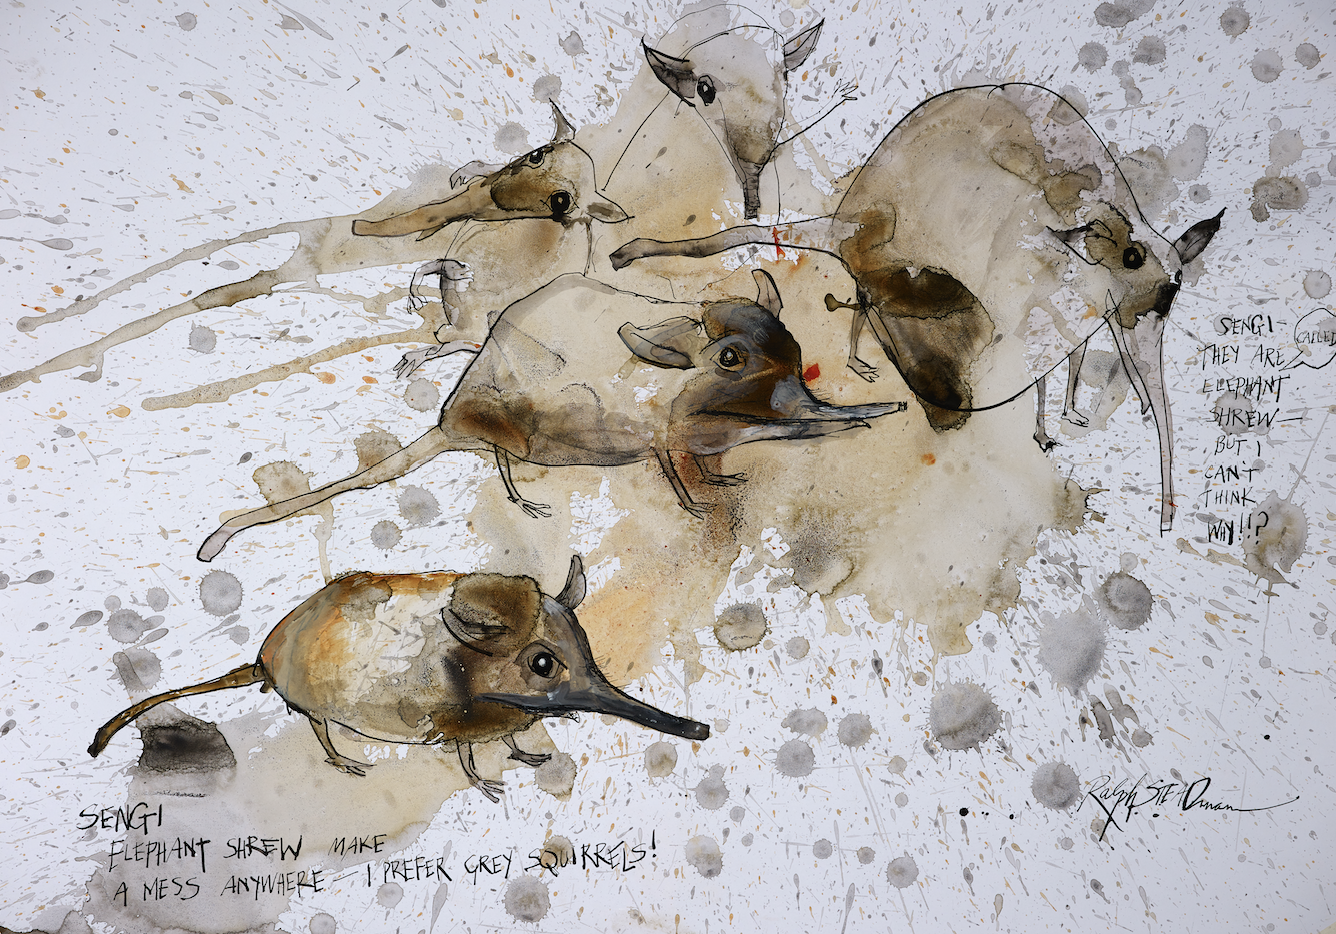 Elephant Shrew from Critical Critters by Ralph Steadman and Ceri Levy